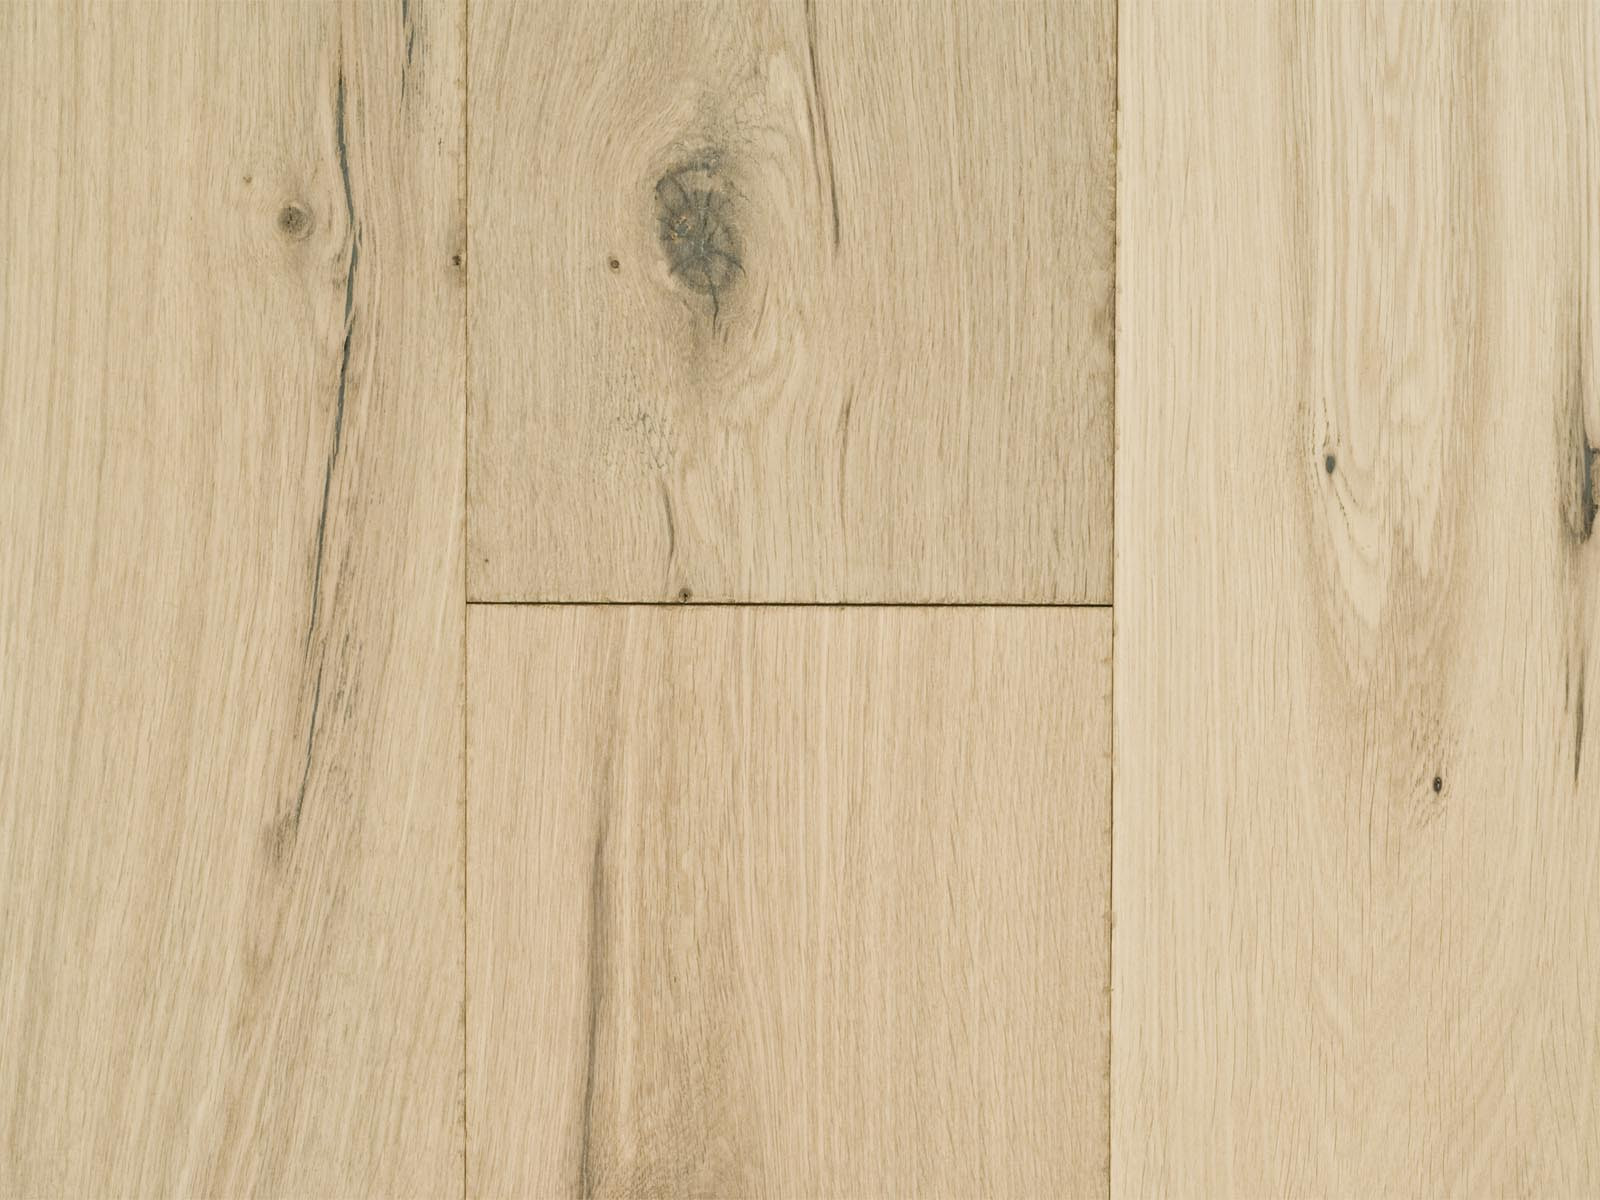 hardwood flooring clearance closeout of duchateau hardwood flooring houston tx discount engineered wood within white oiled european oak